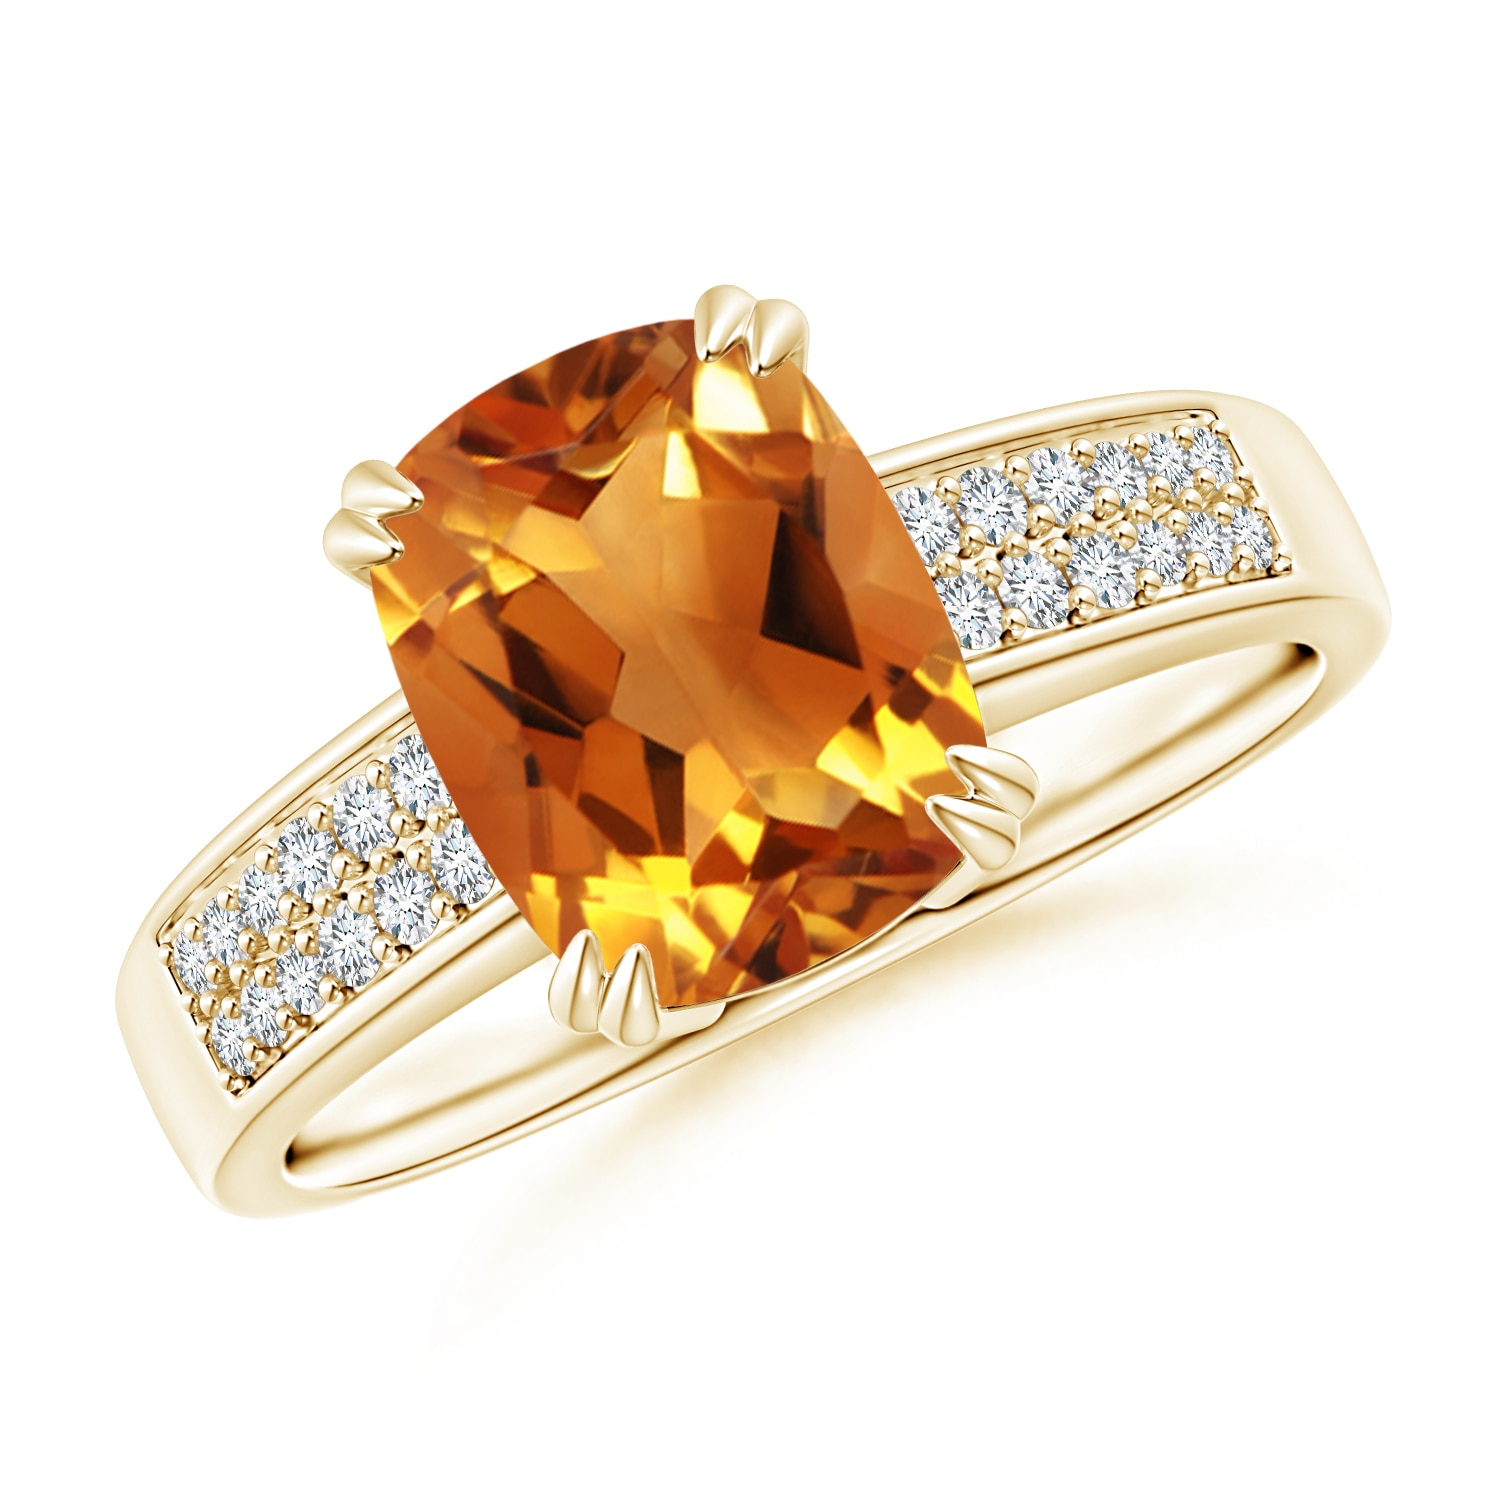 Double Prong-Set Cushion Citrine Cocktail Ring with Diamond Accents - Angara.com